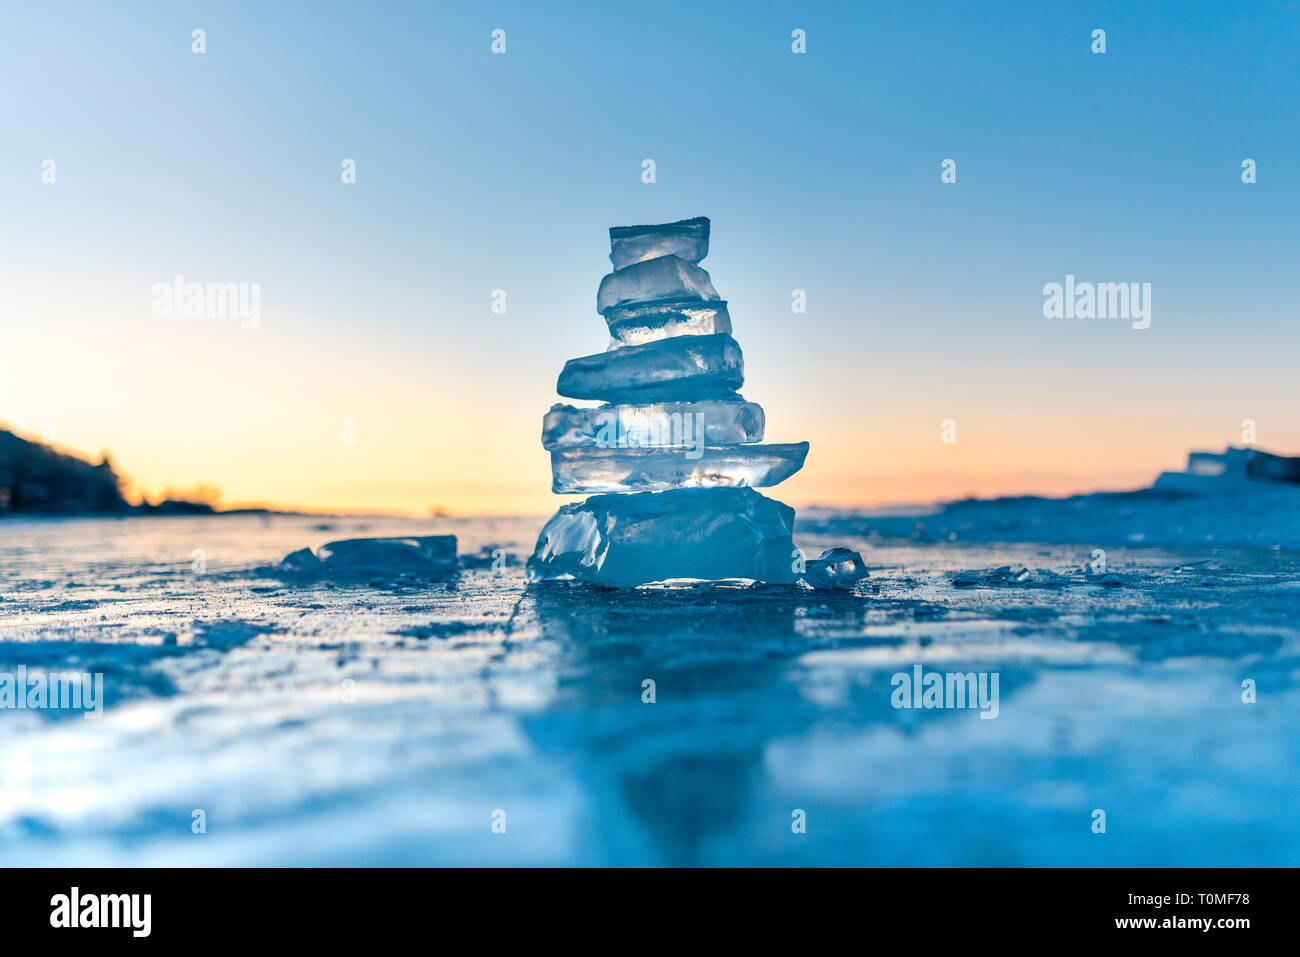 Ice pieces and ice sculptures at sunset on Lake Baikal, Siberia, Russia Stock Photo